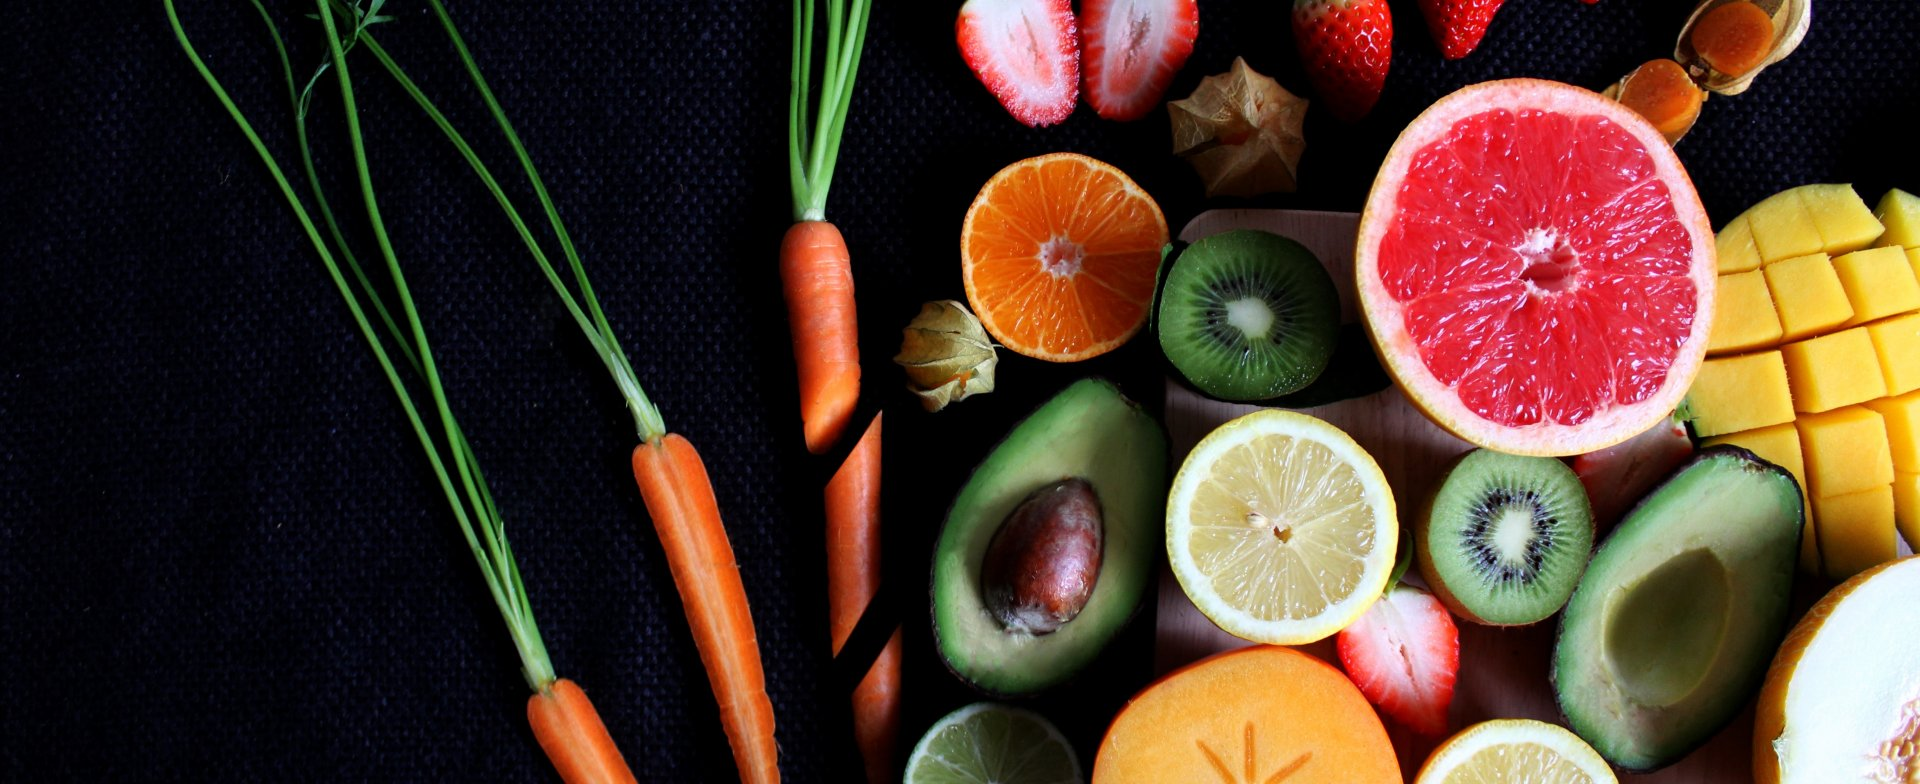 Vegetable and fruit diet